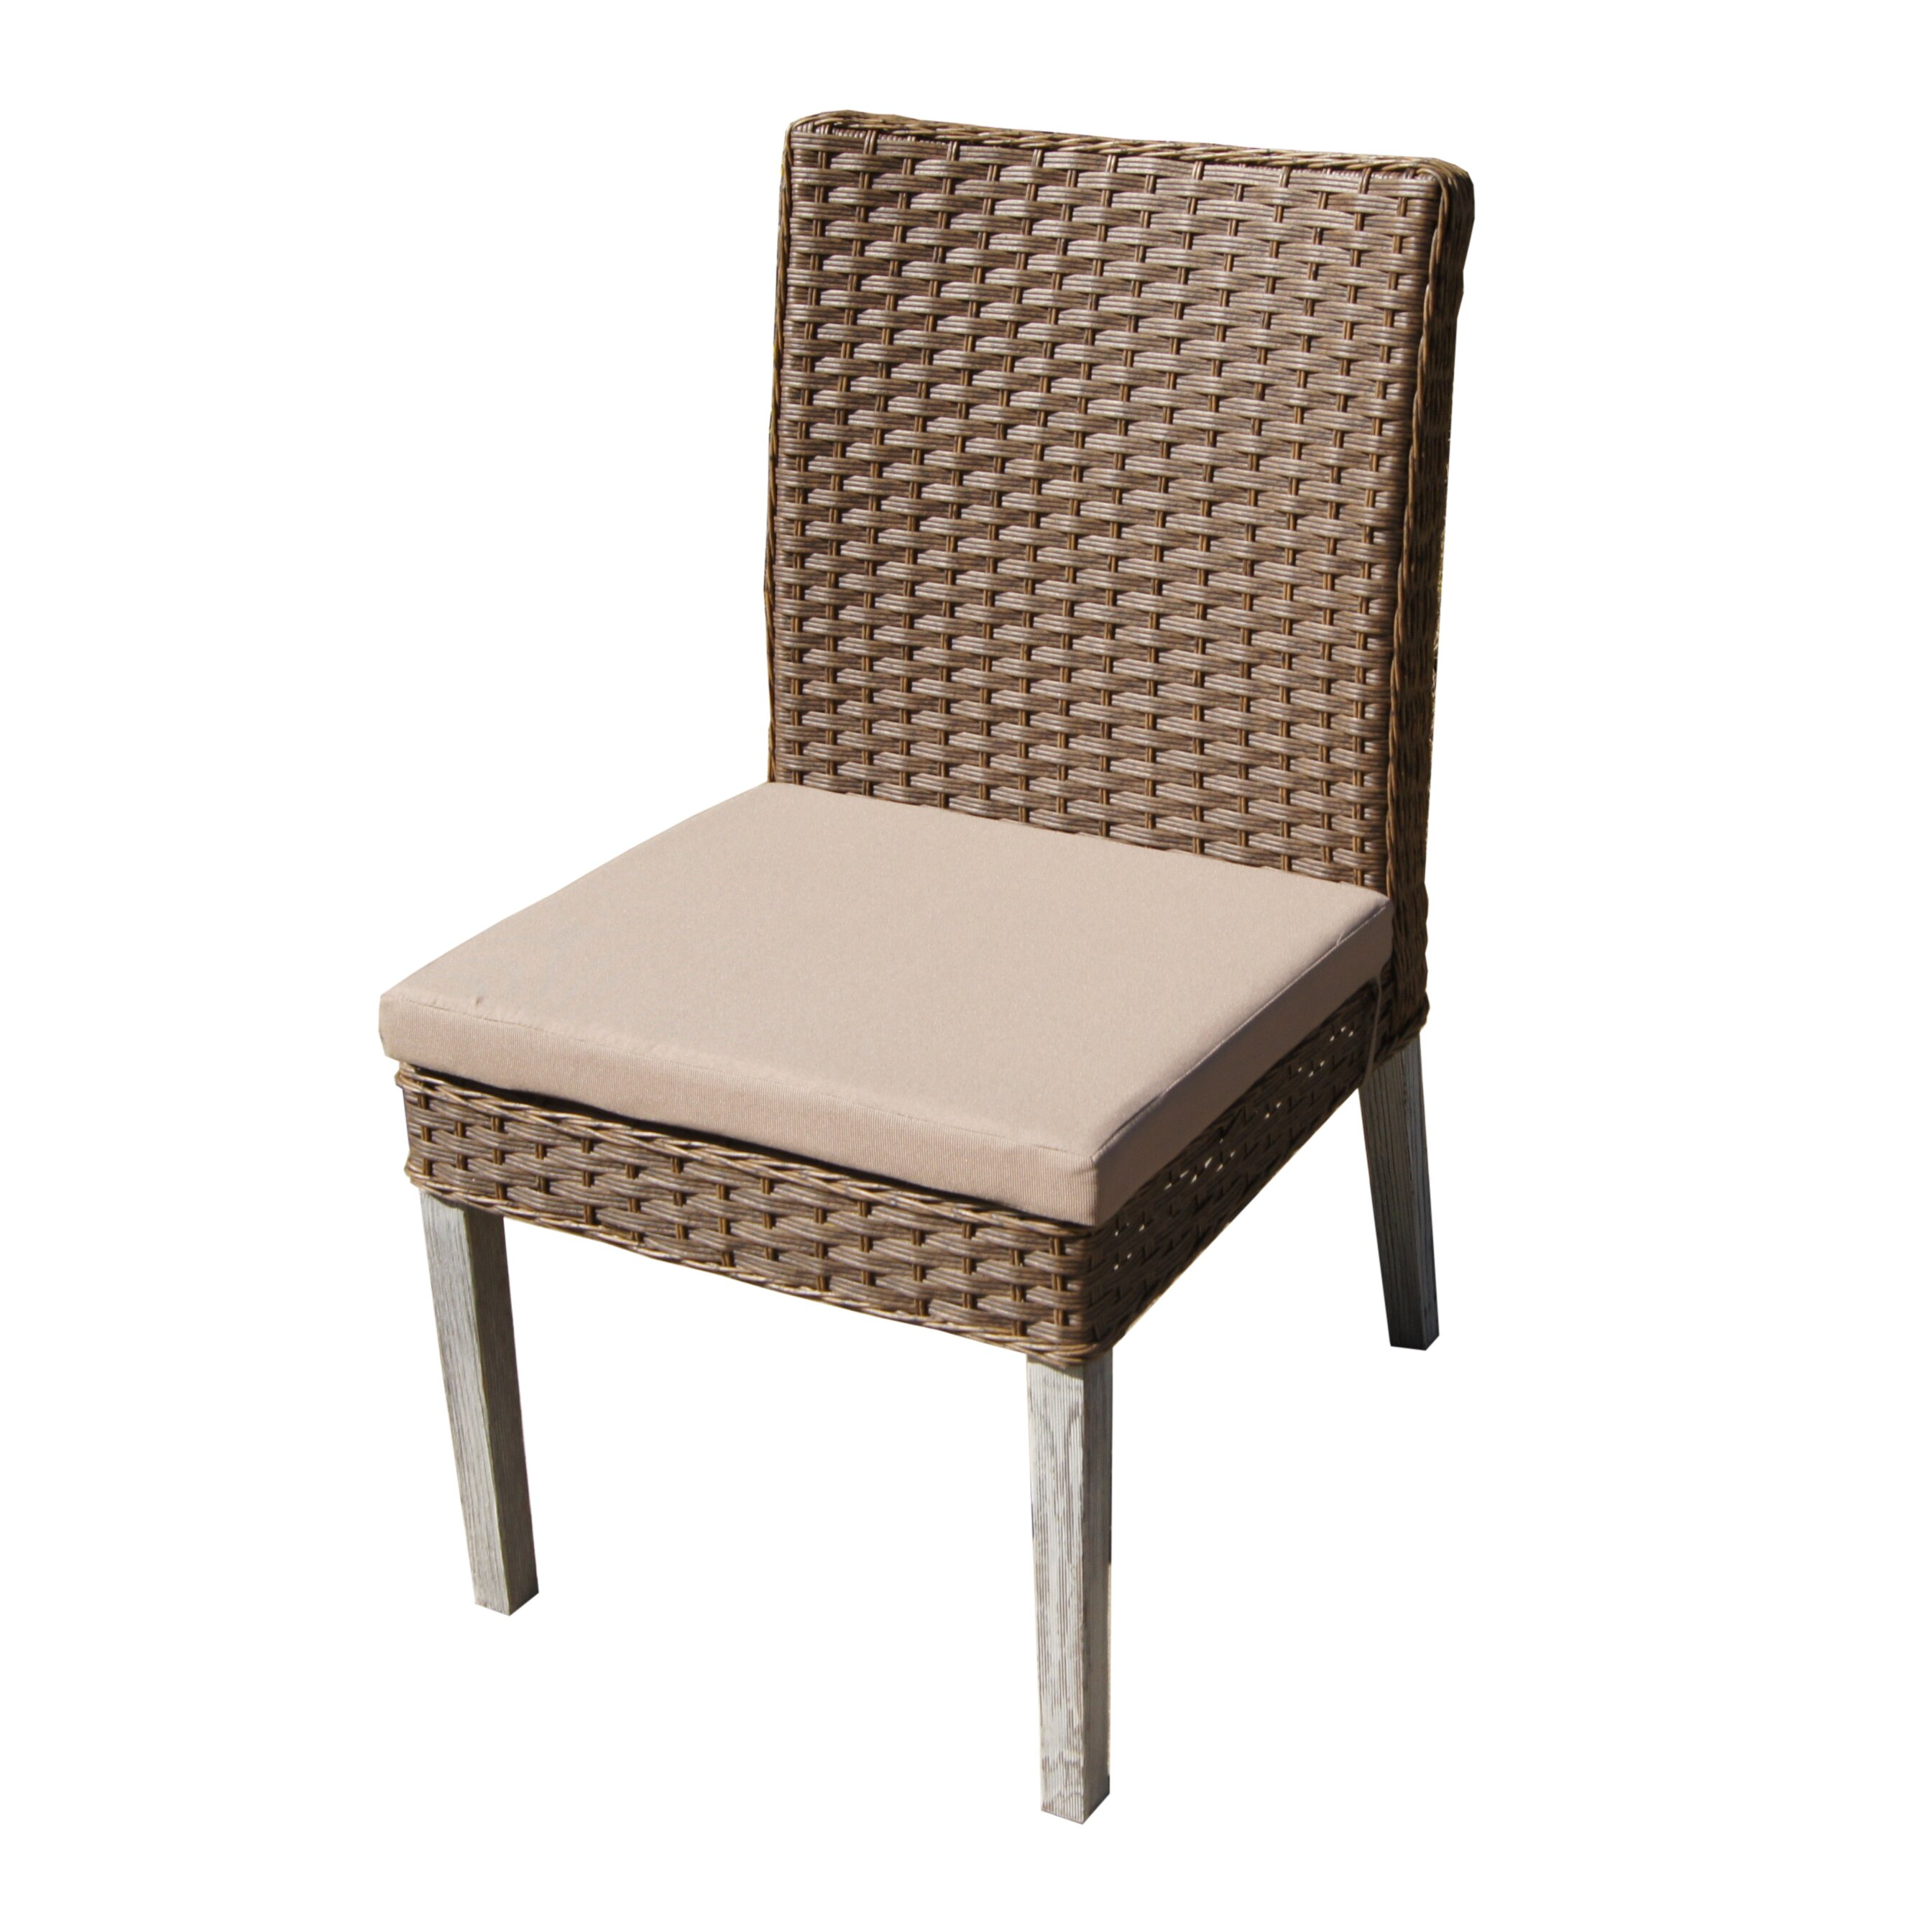 Thy hom lindmere 7 piece dining set with cushion reviews for Hom patio furniture